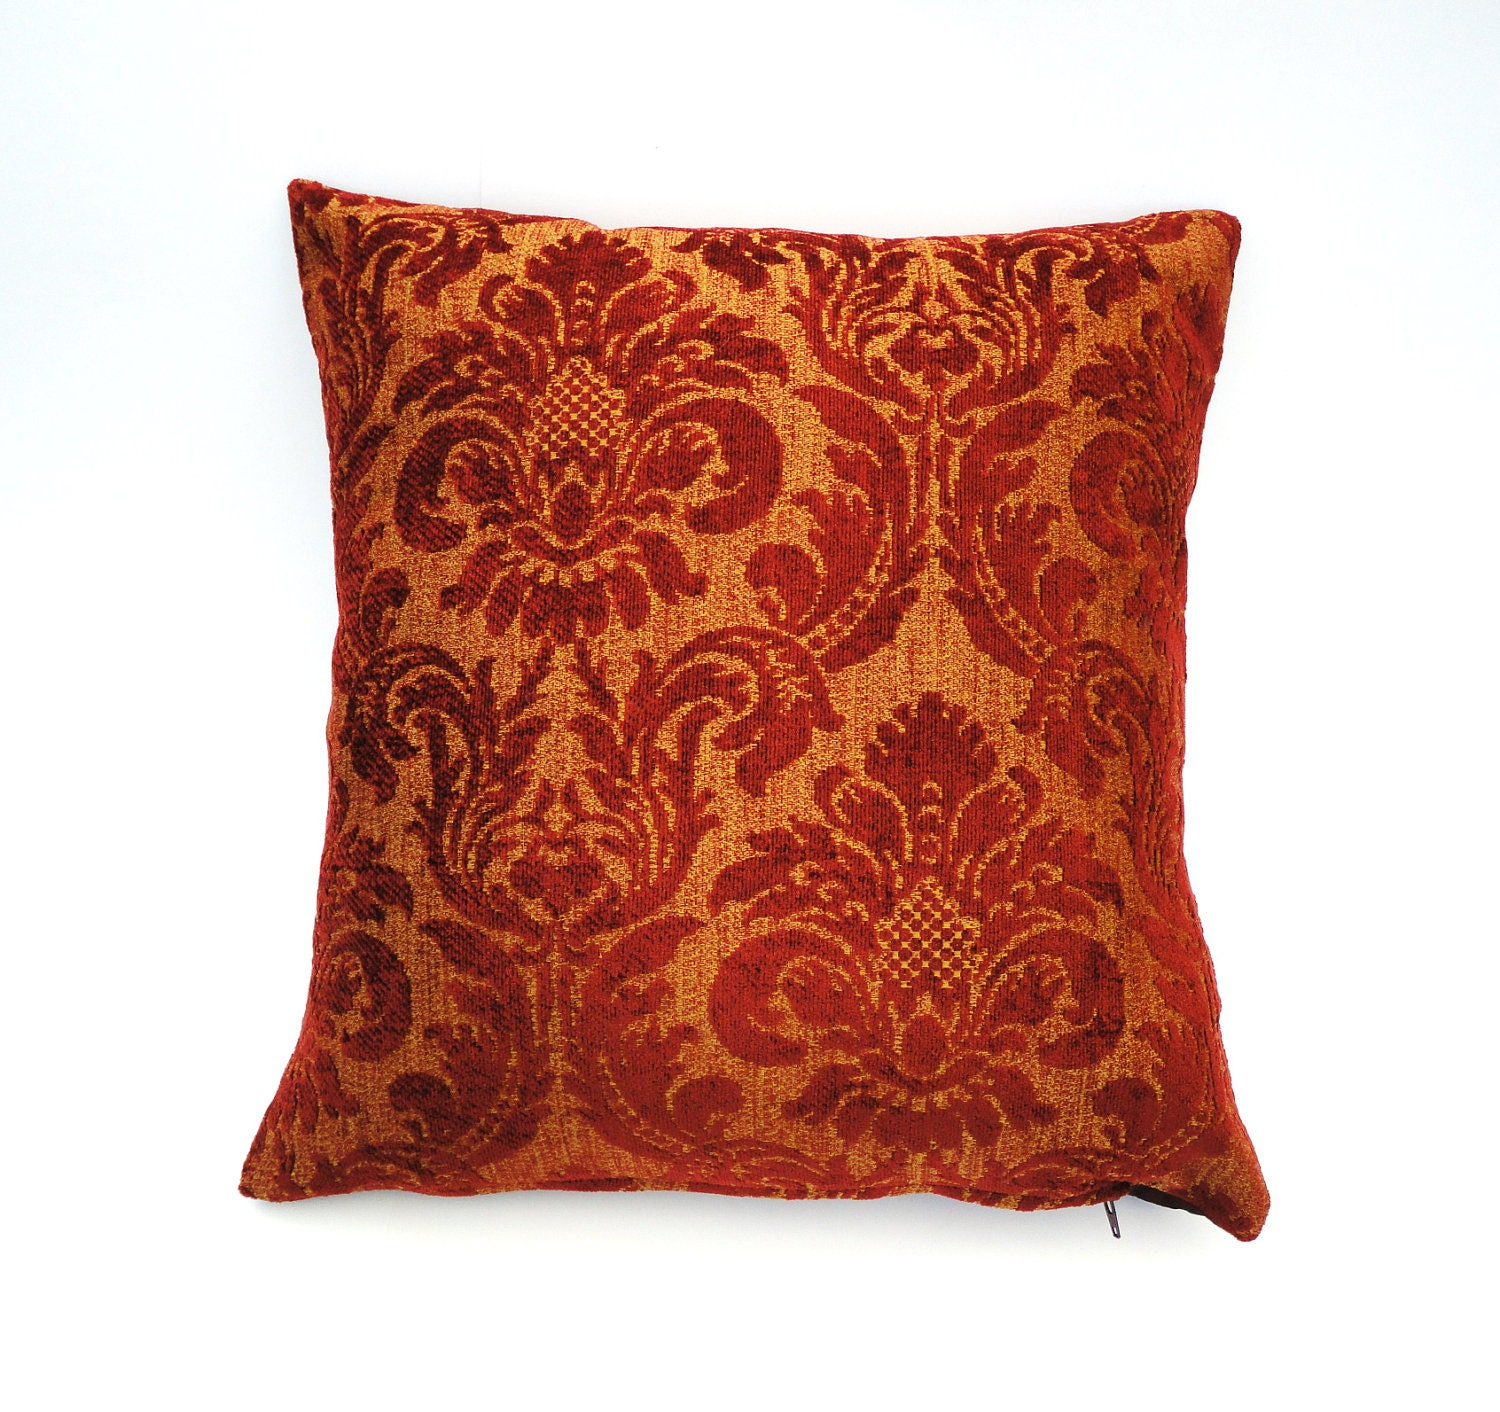 Burgundy Colored Throw Pillows : Decorative Pillow Cover Burgundy Venetian by chantalmarieliving